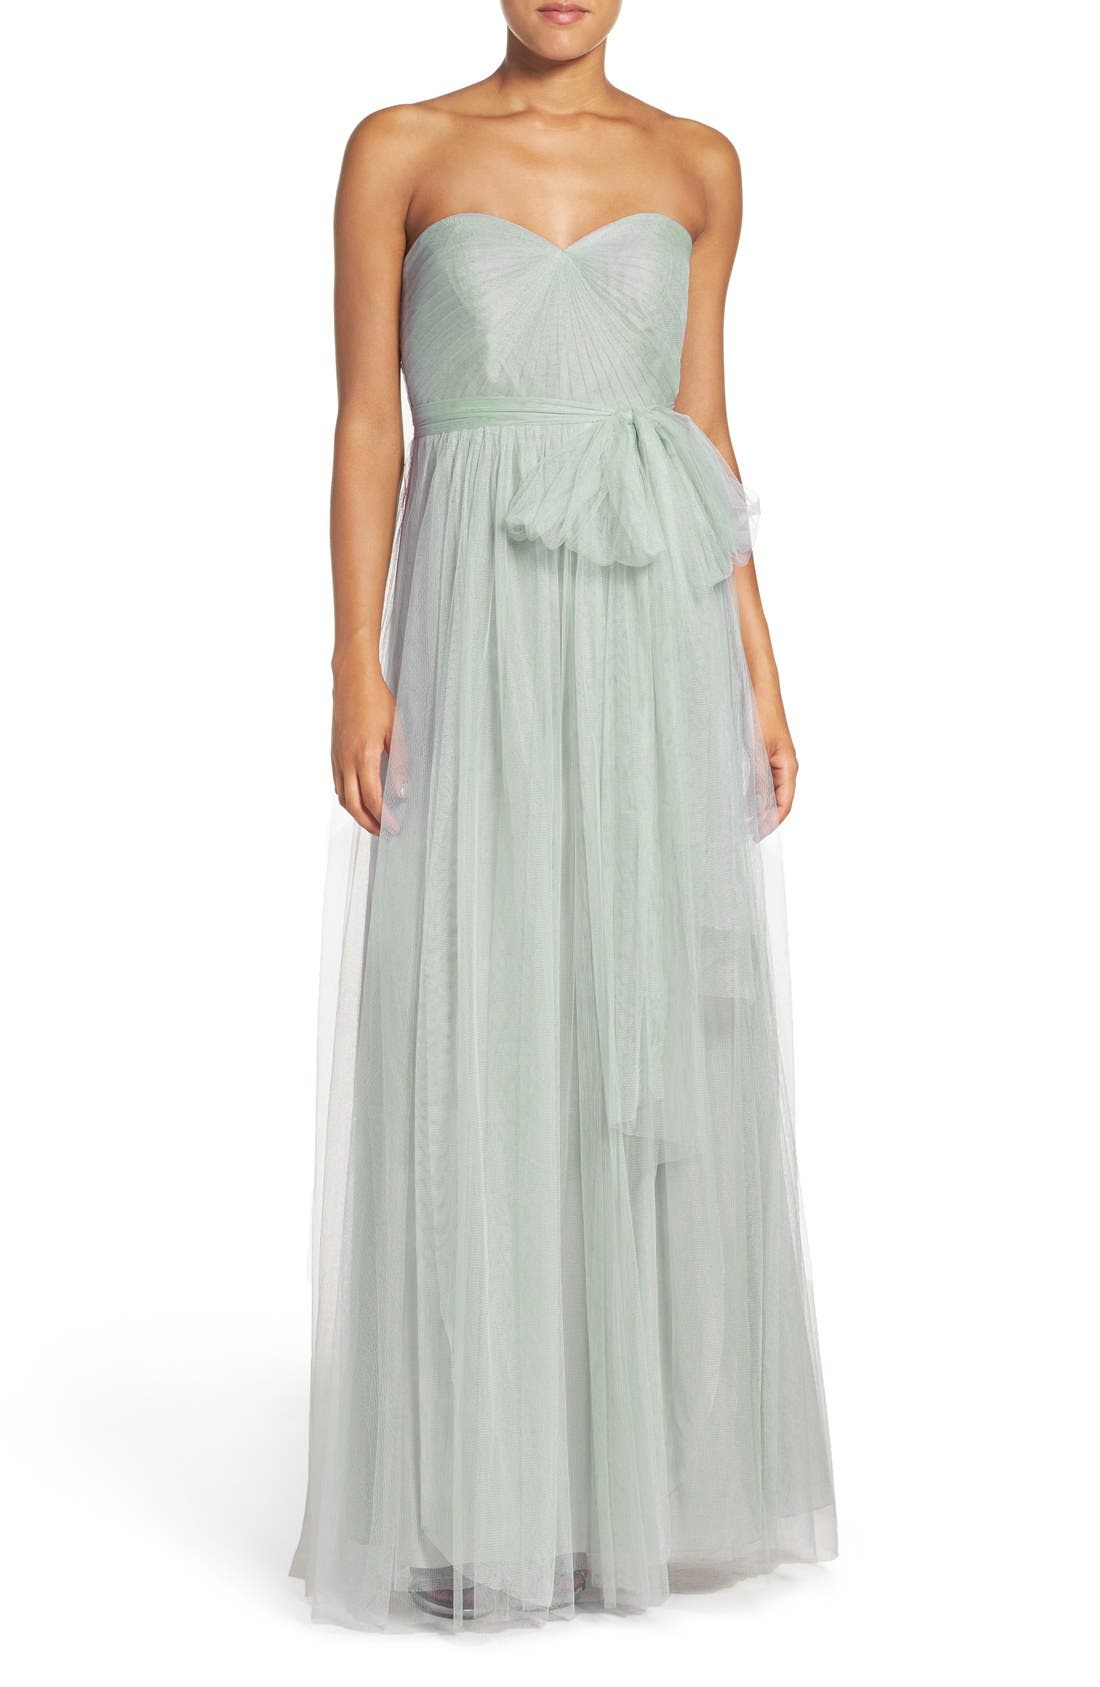 Annabelle Convertible Tulle Column Dress,                             Main thumbnail 21, color,